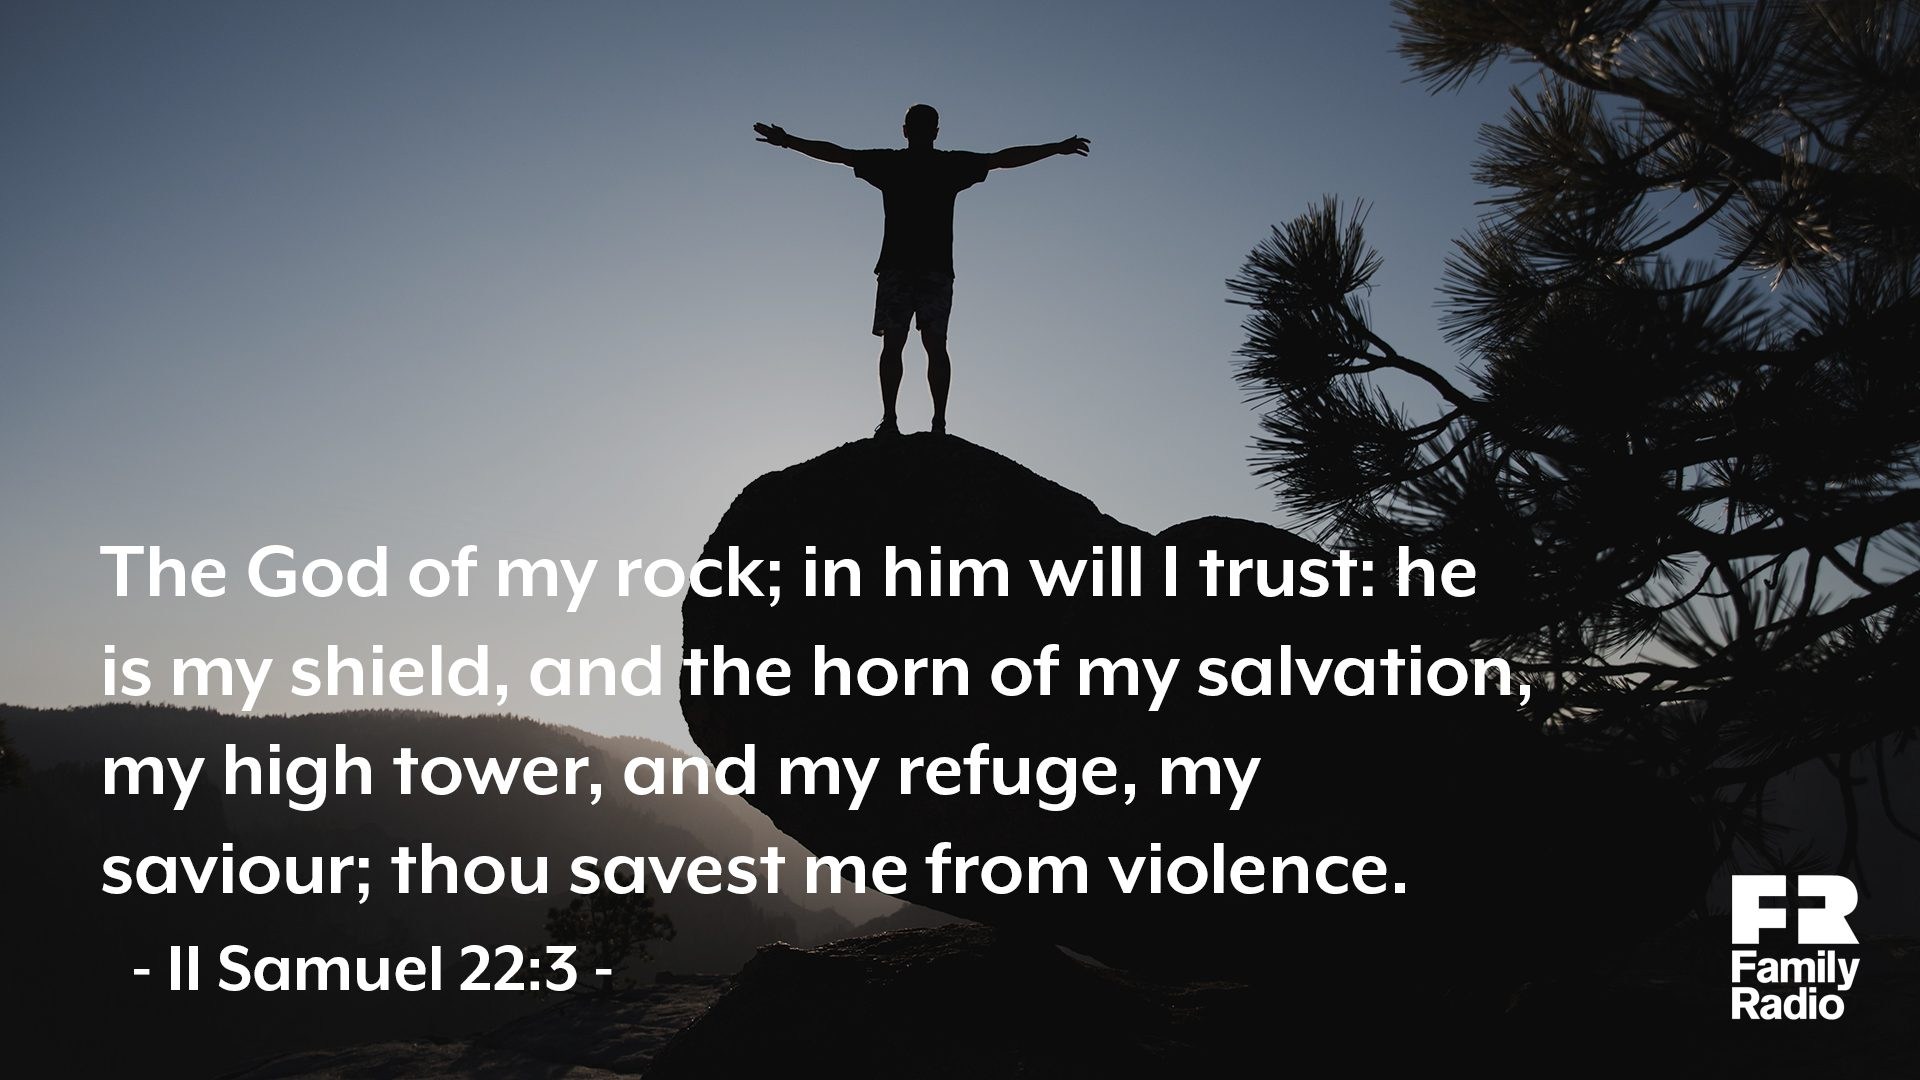 """The God of my rock; in him will I trust: he is my shield, and the horn of my salvation, my high tower, and my refuge, my savior; thou savest me from violence."""